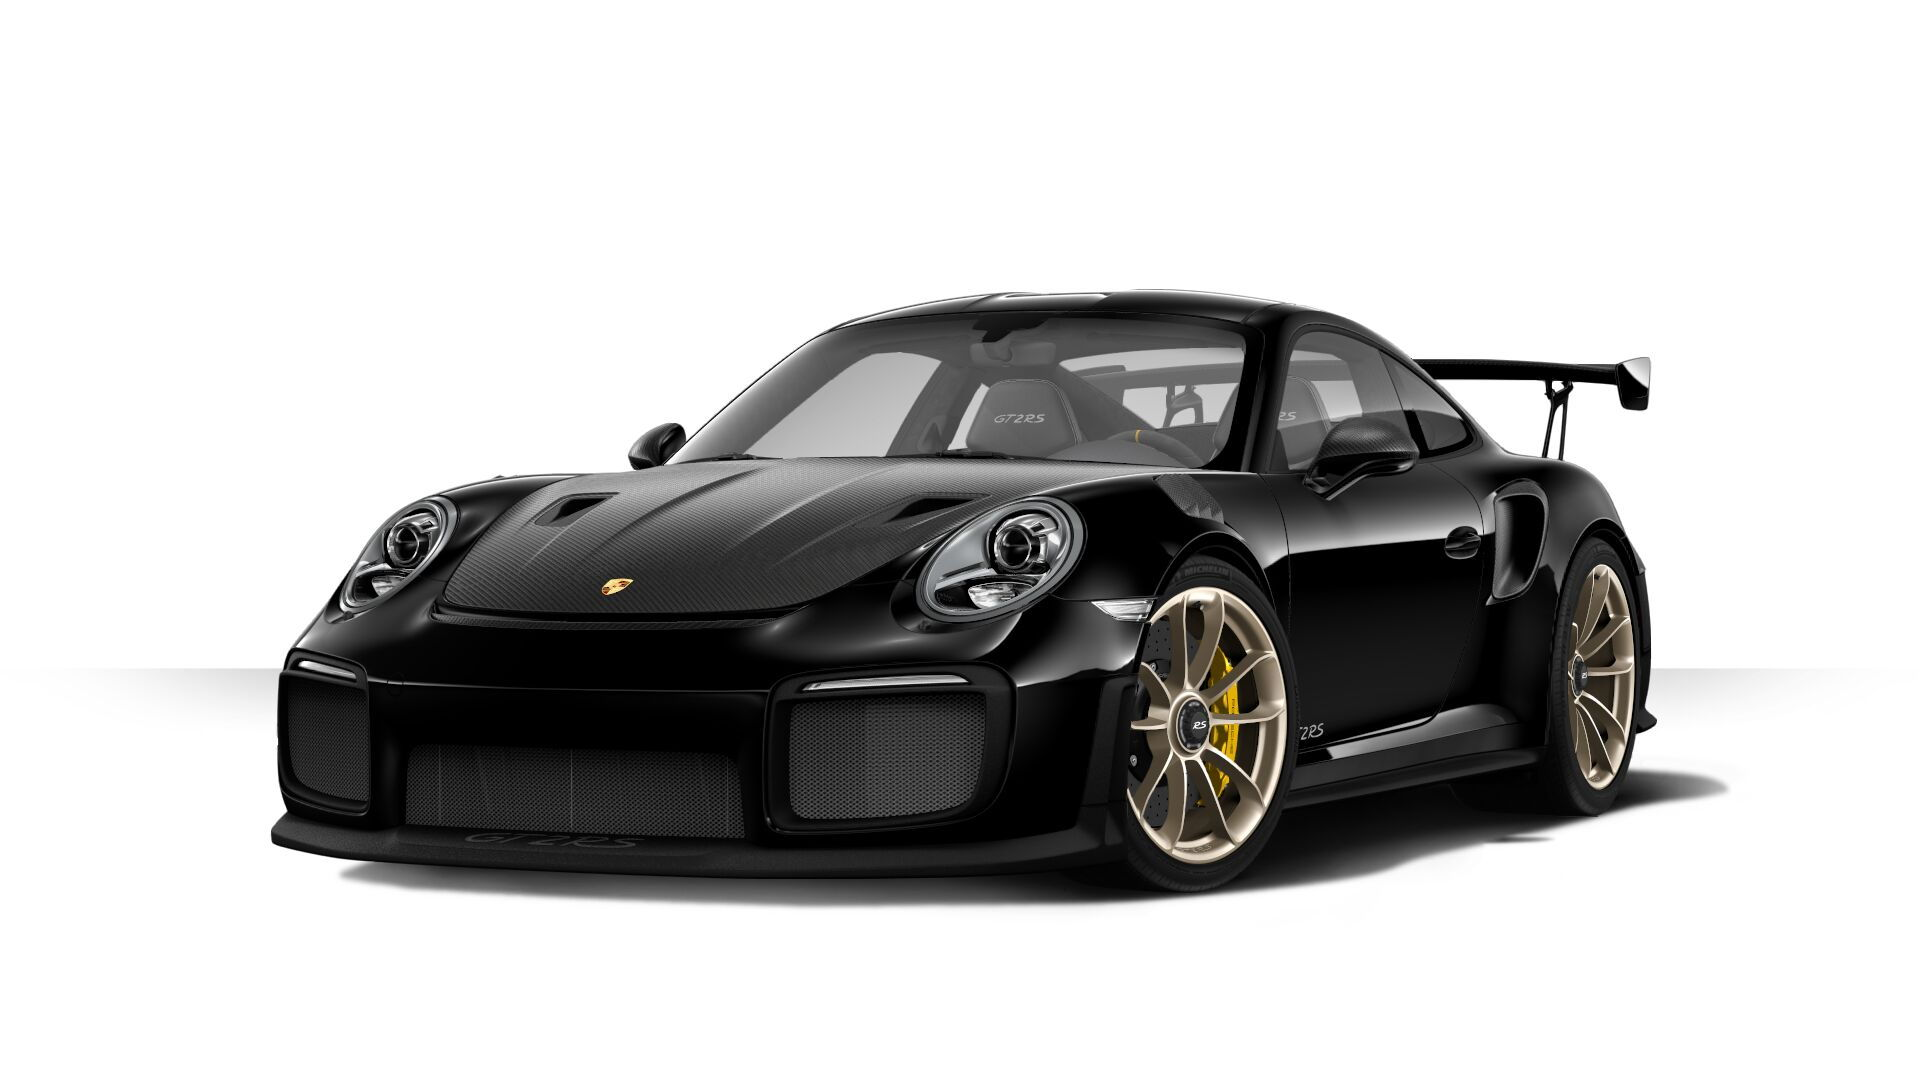 80-iris_5d4ca2495990e45c84ffe2387dc128287b85f9cd Interesting Porsche 911 Gt2 and Gt3 Cars Trend